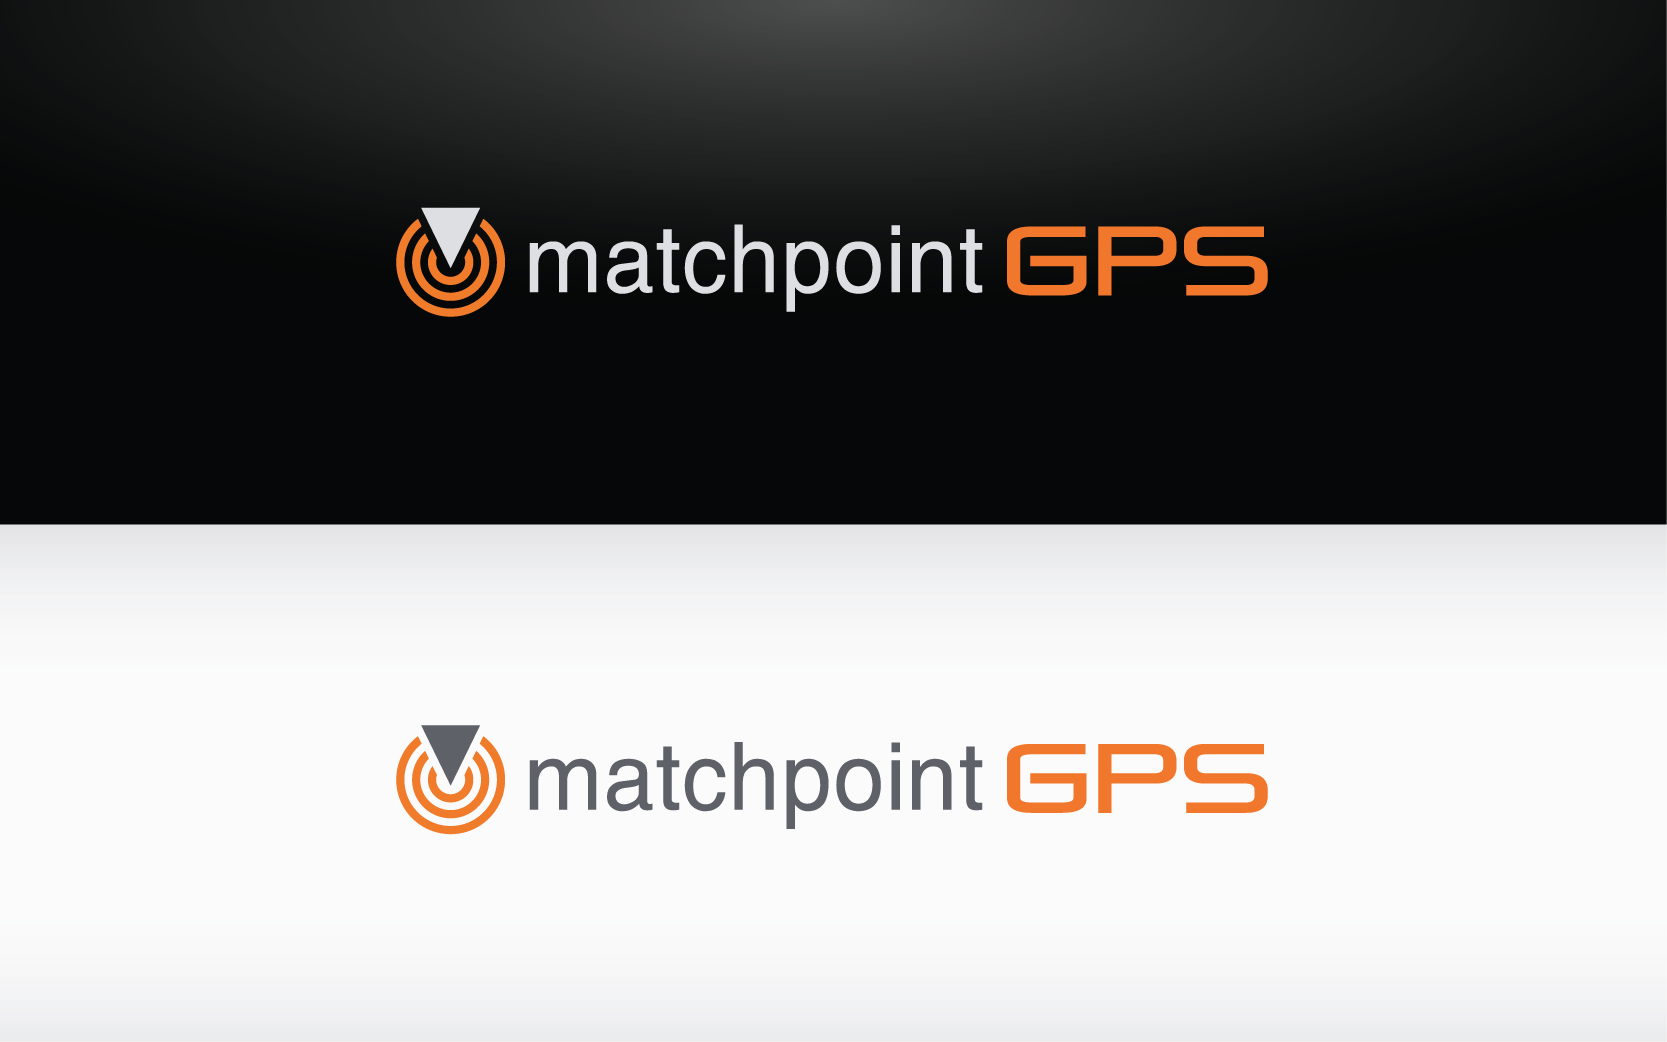 New logo wanted for matchpoint GPS